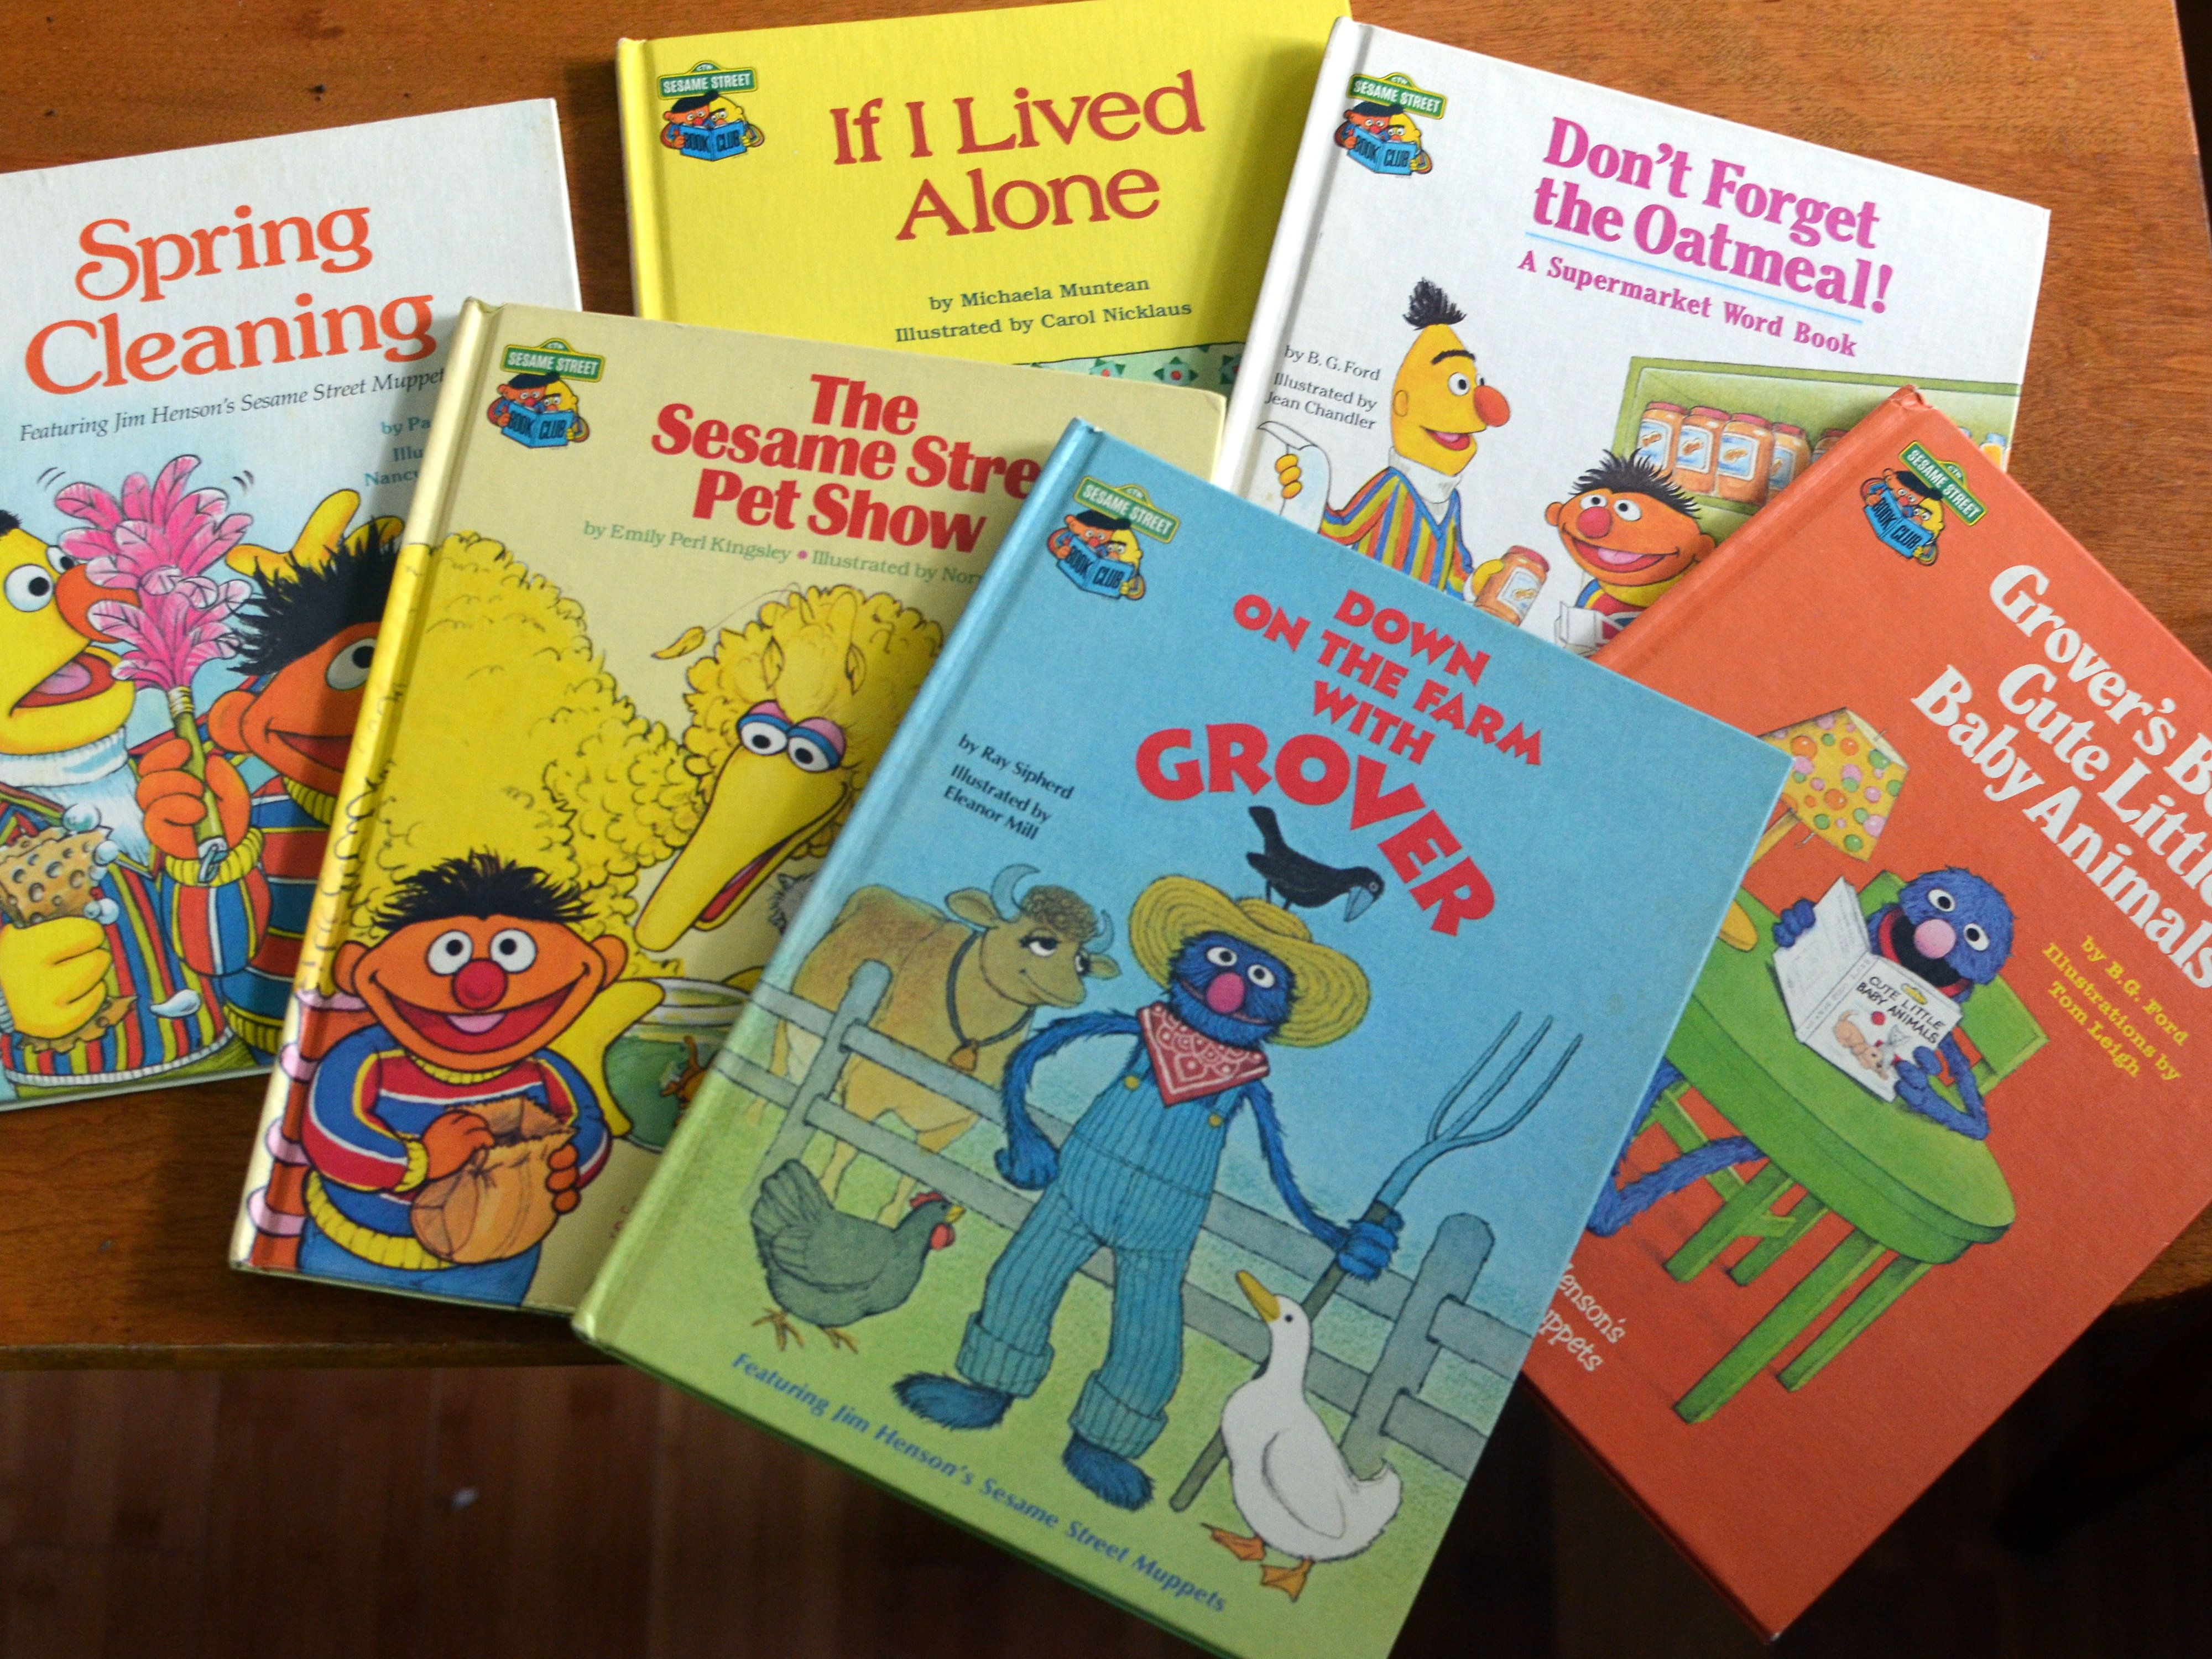 Sesame street books from the 70s and 80s